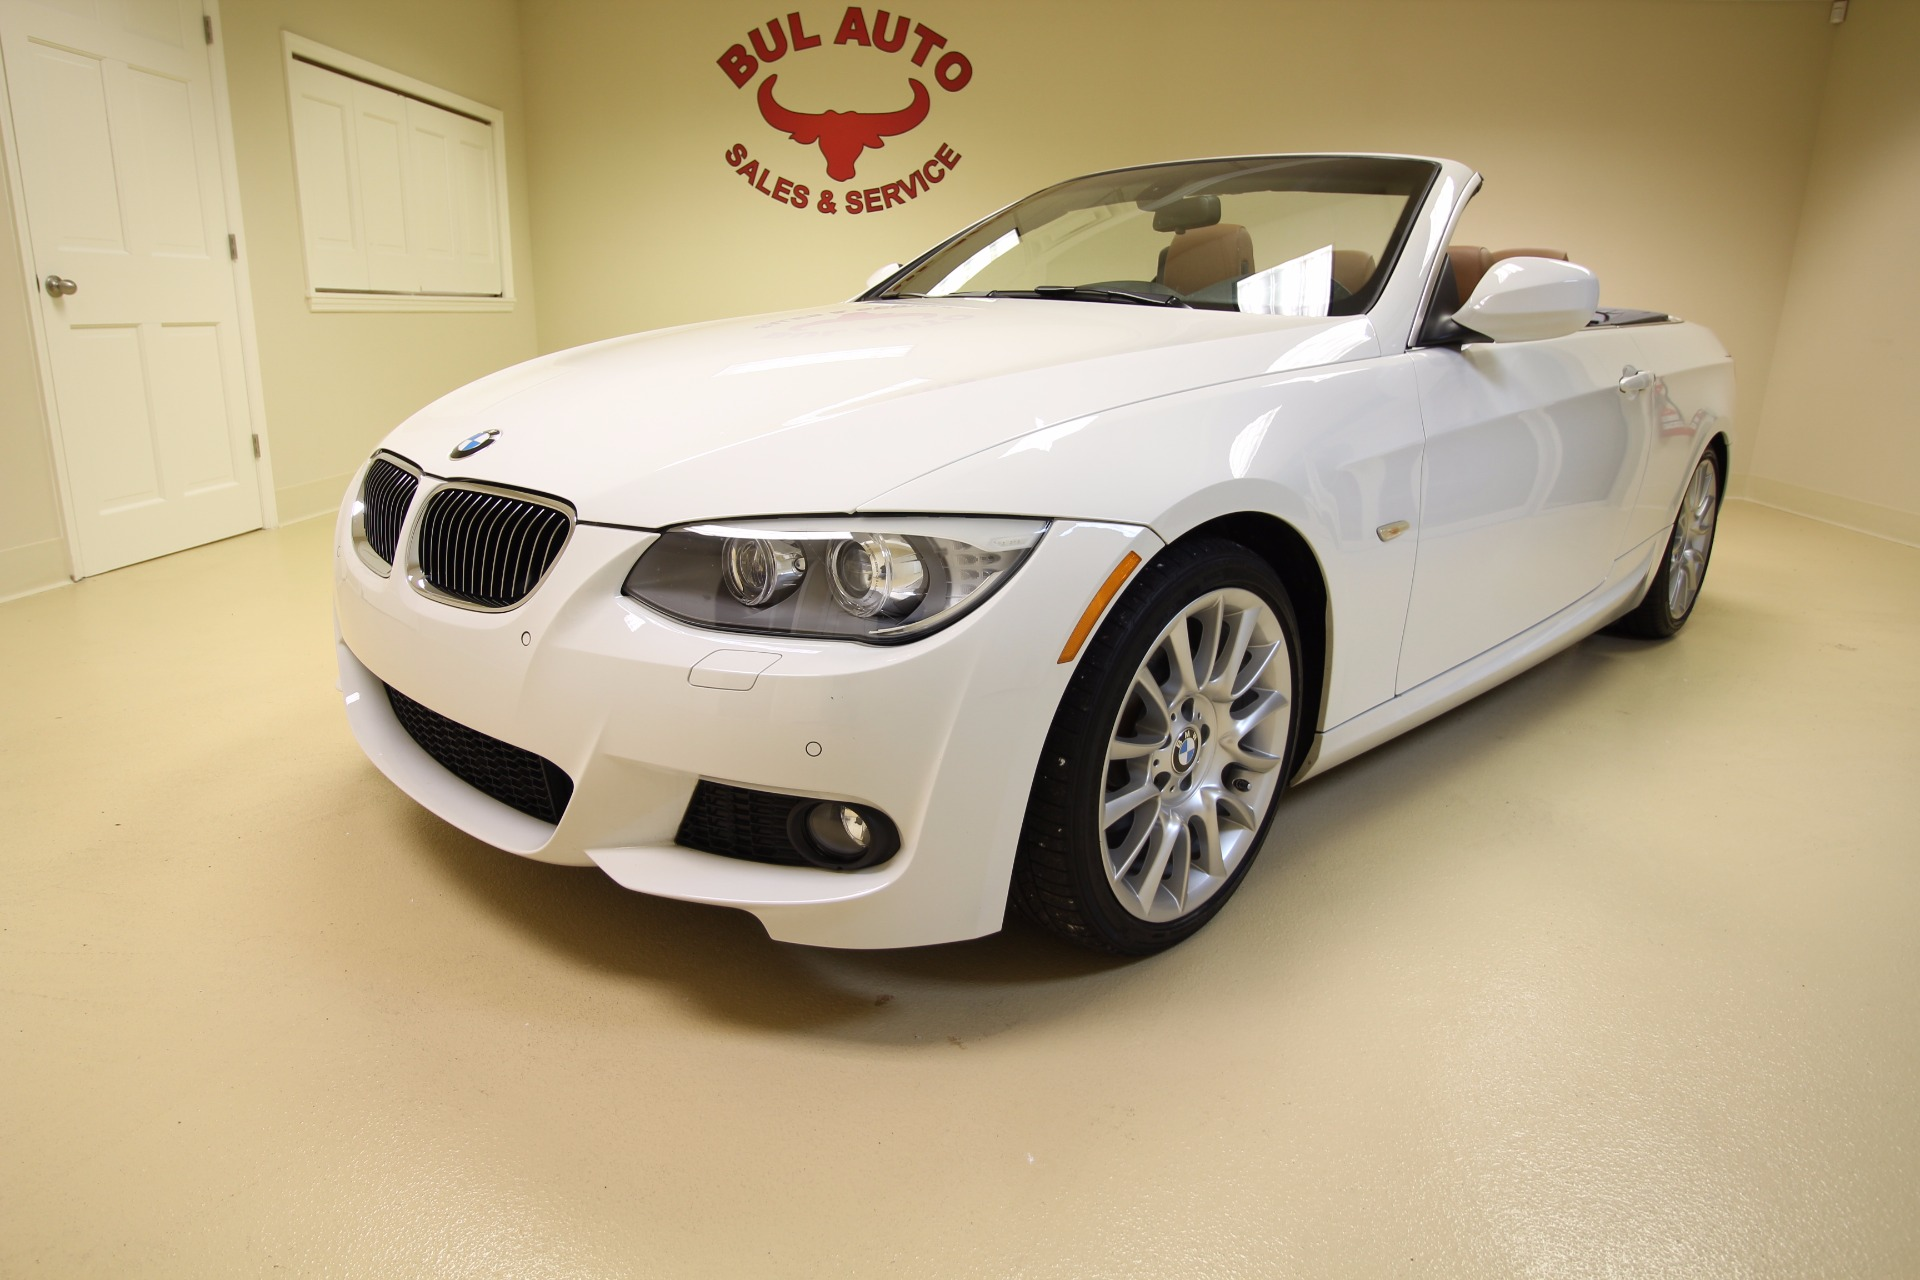 2013 bmw 3 series 328i convertible sulev stock 16336 for sale near albany ny ny bmw. Black Bedroom Furniture Sets. Home Design Ideas